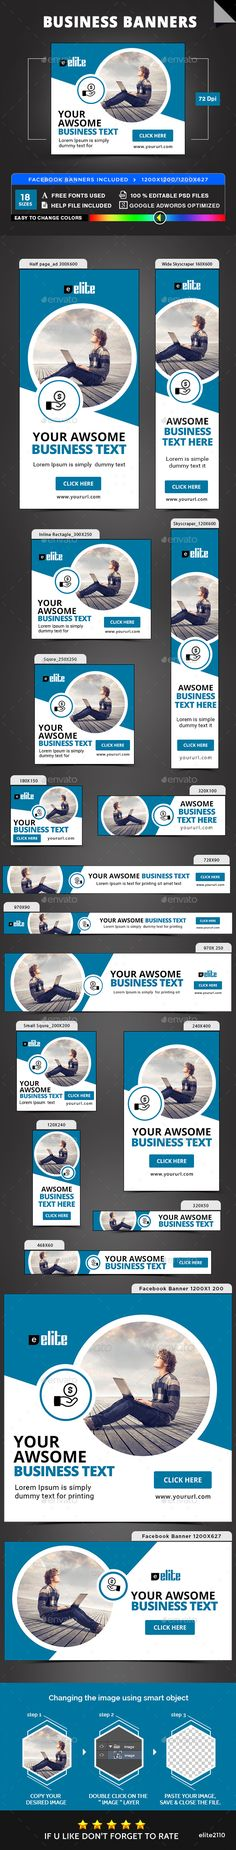 Business Banners - Banners & Ads Web Elements Download here : https://graphicriver.net/item/business-banners/19349547?s_rank=140&ref=Al-fatih